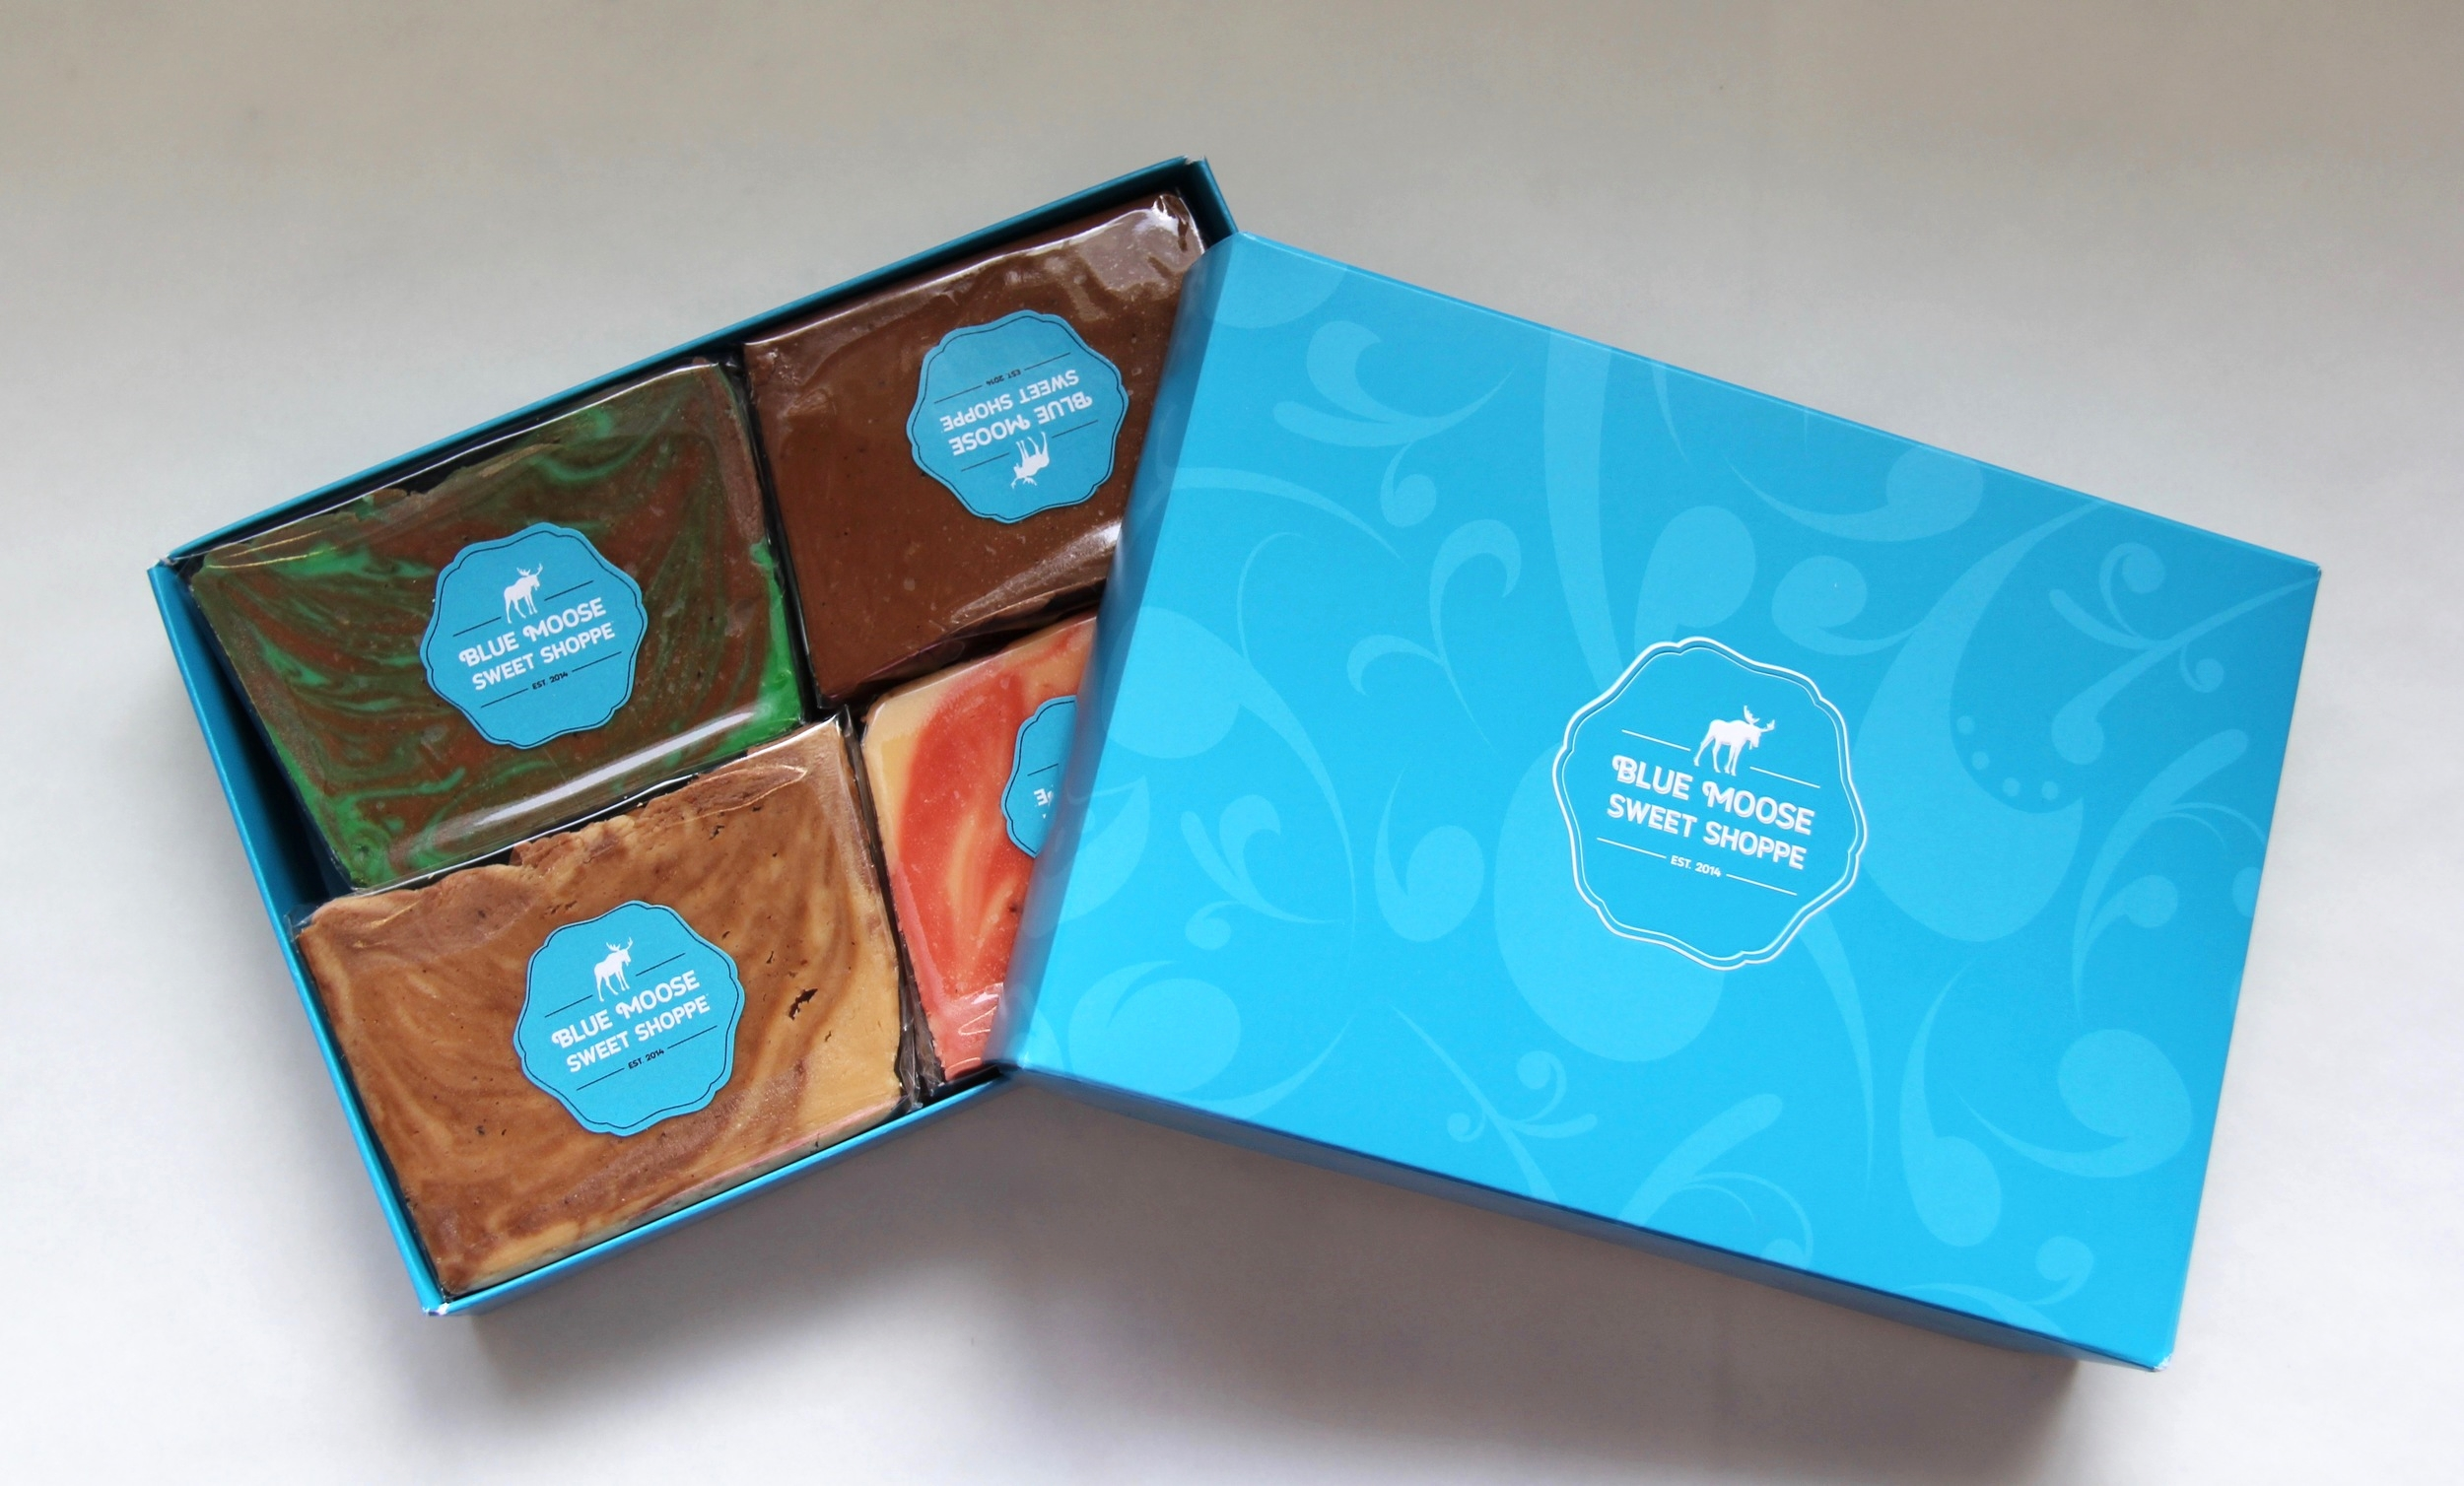 The beautiful gift boxes contain 1 lb or 2 lbs of fudge.